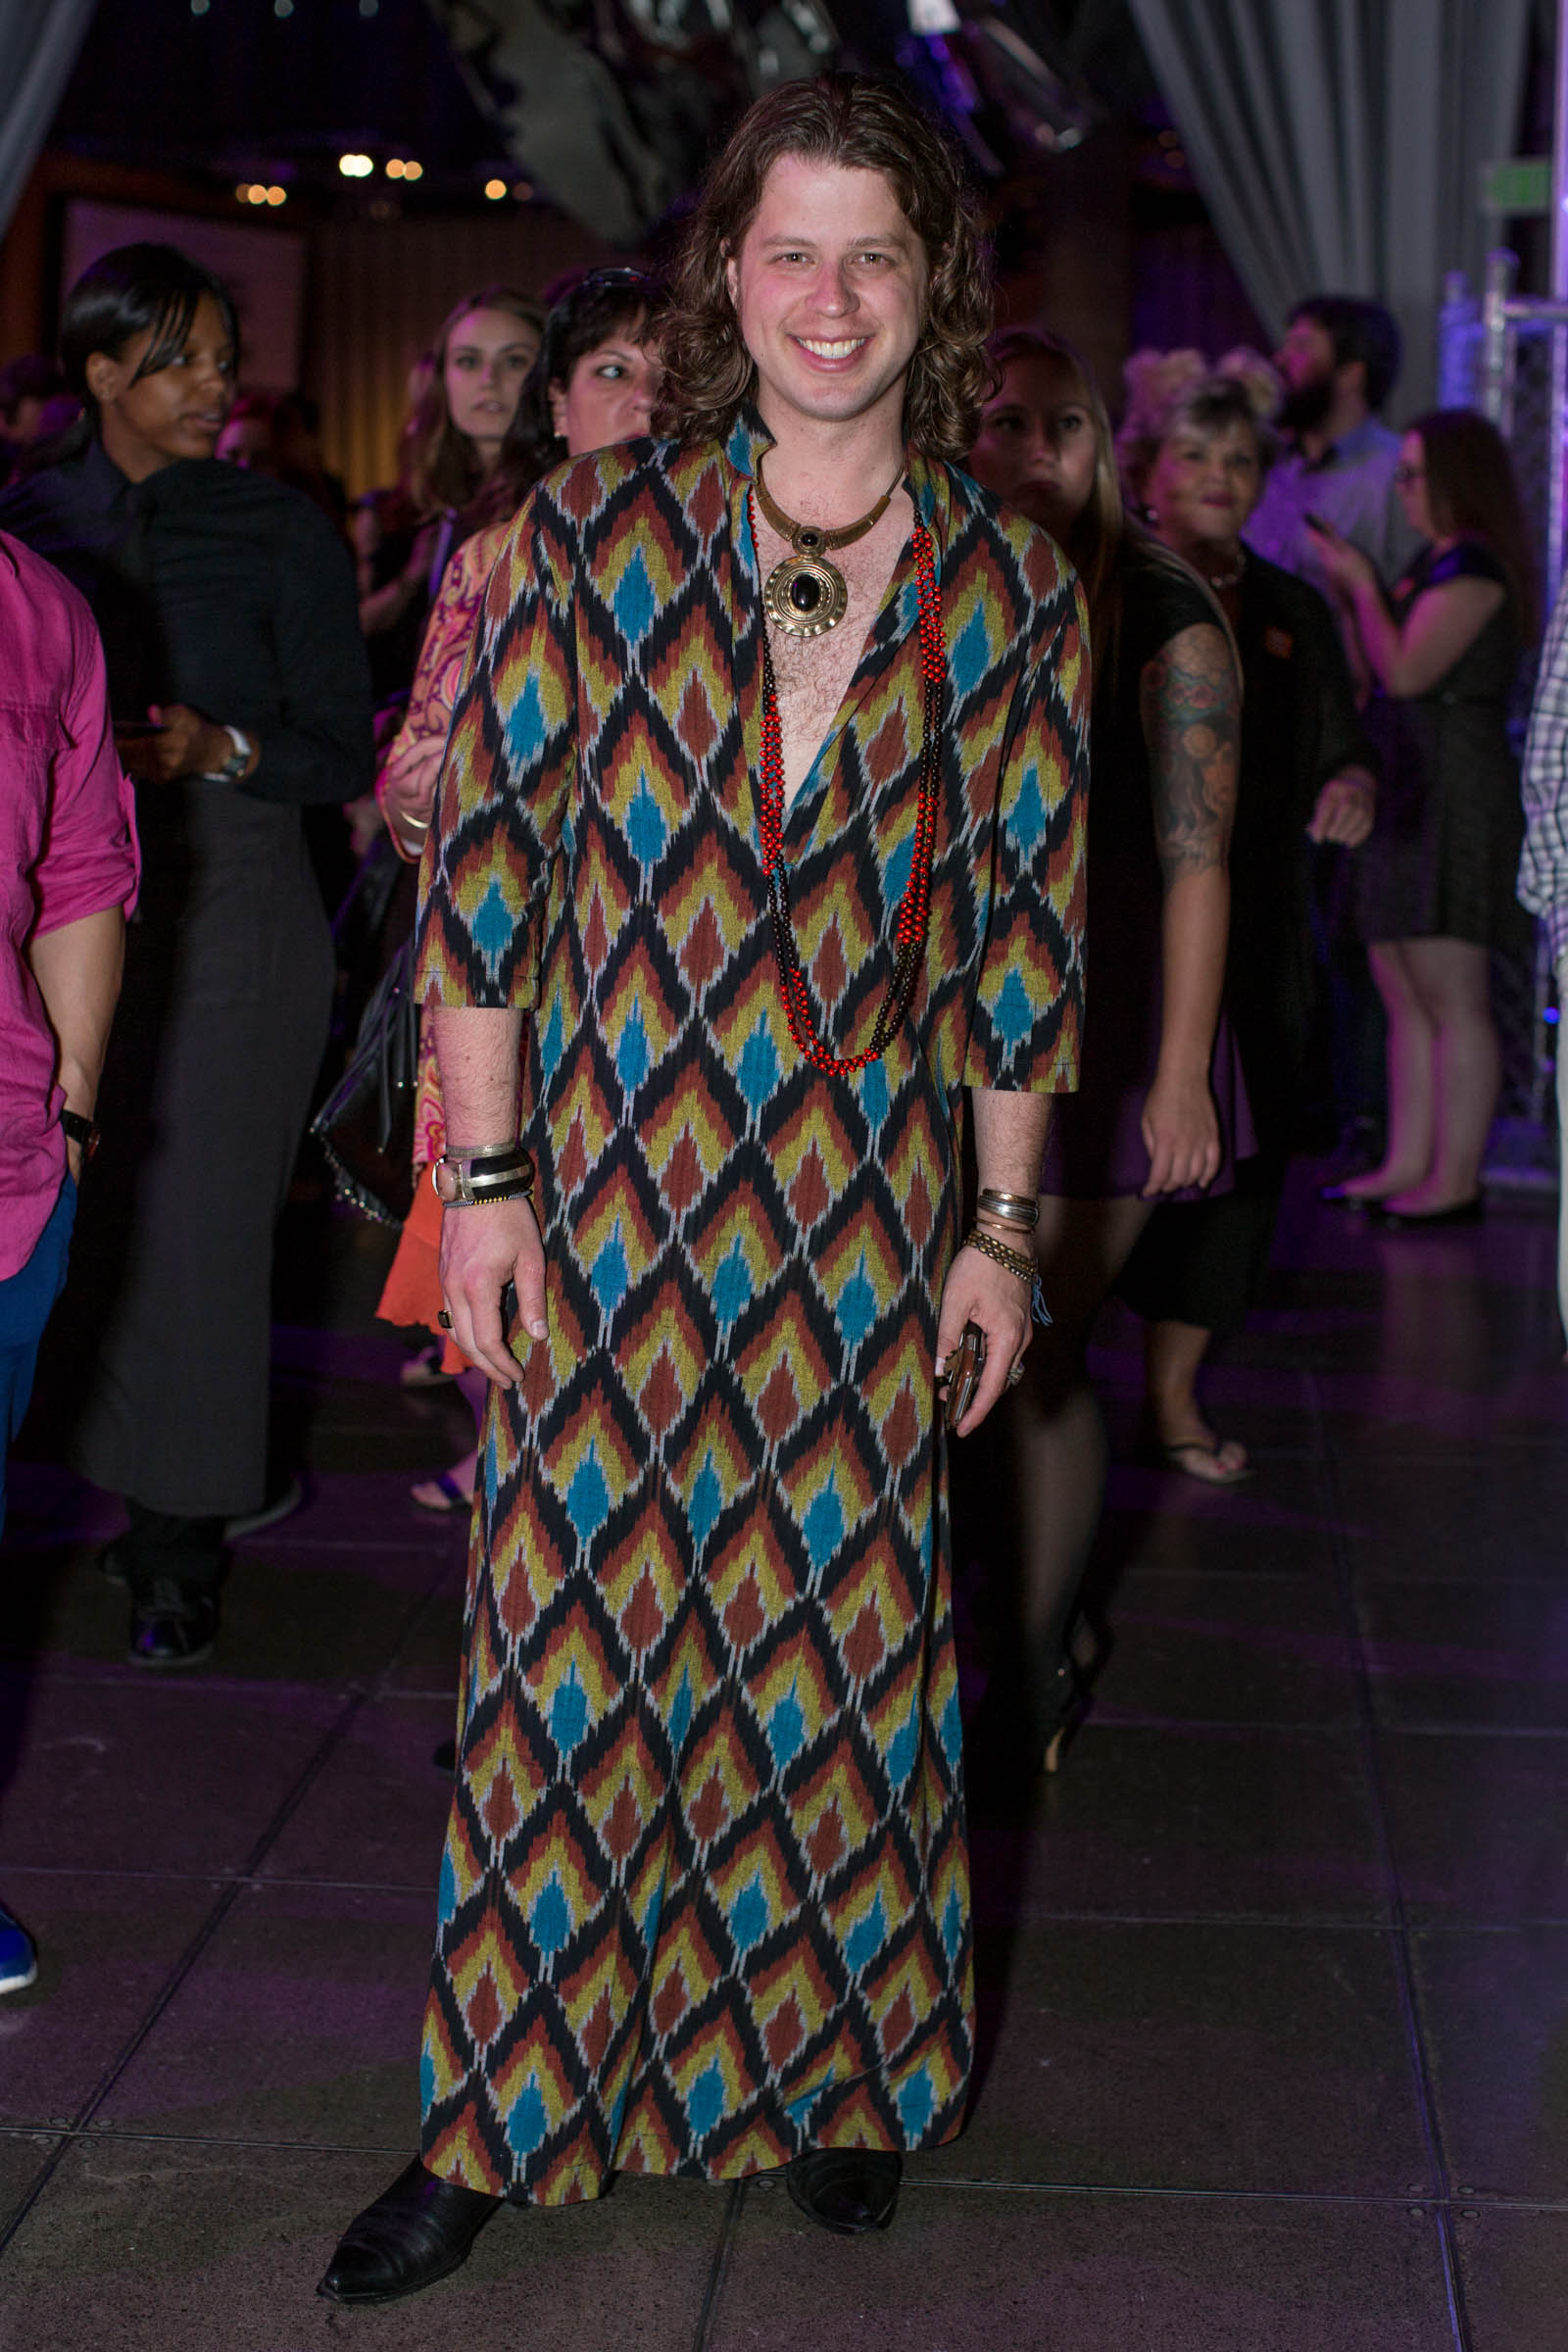 World of WearableArt Opening Party